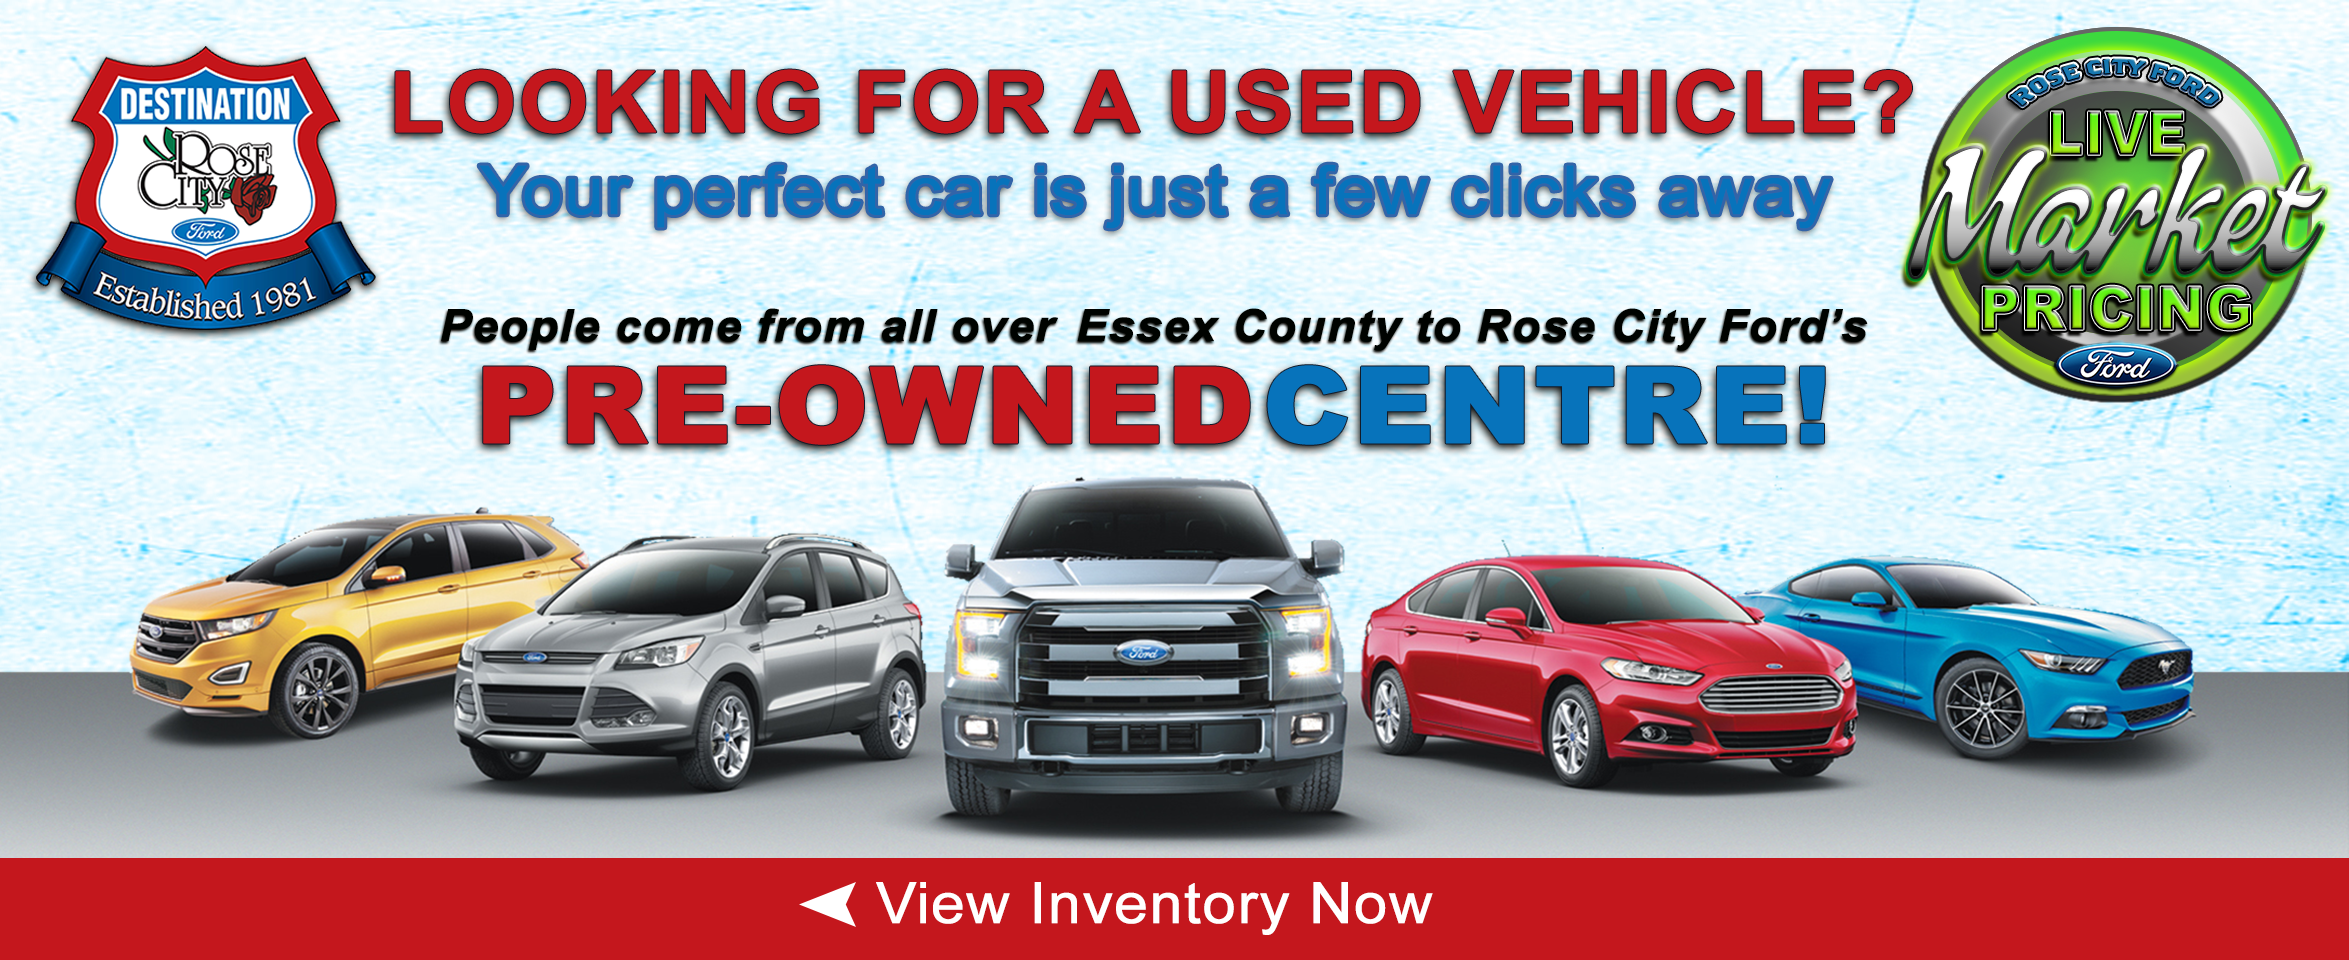 PreOwned Live Marketing